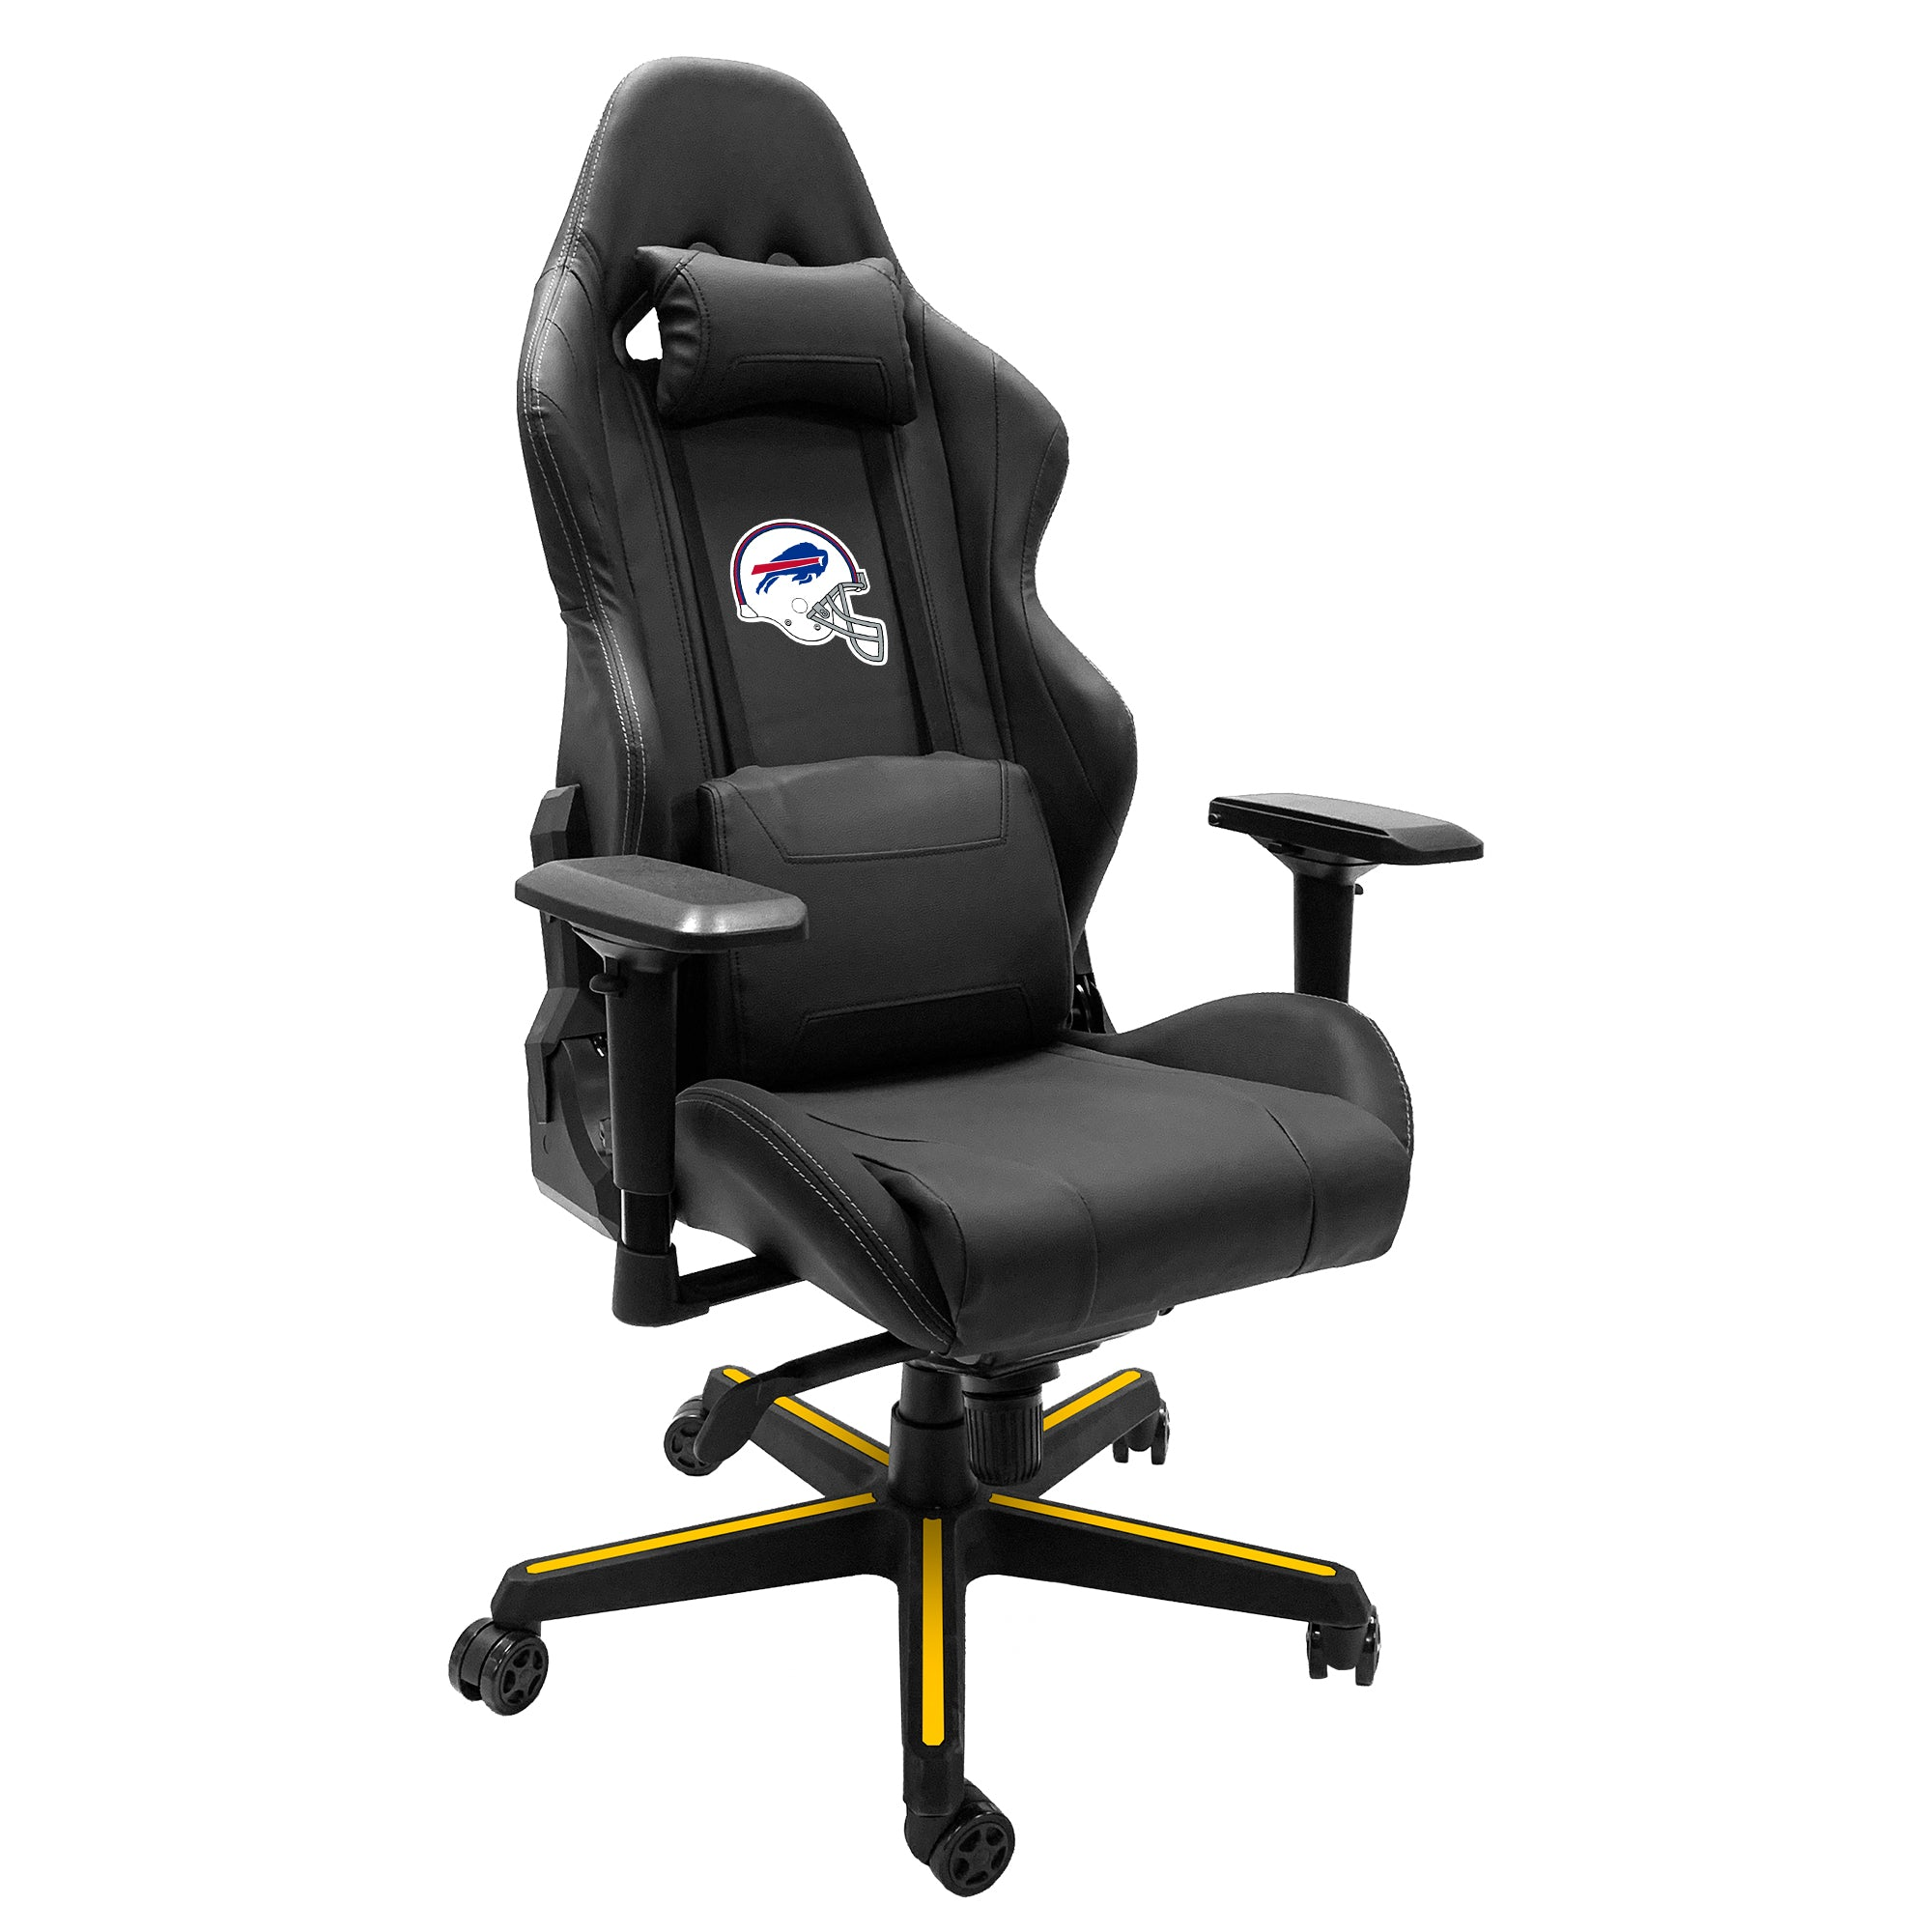 Xpression Gaming Chair with  Buffalo Bills Helmet Logo